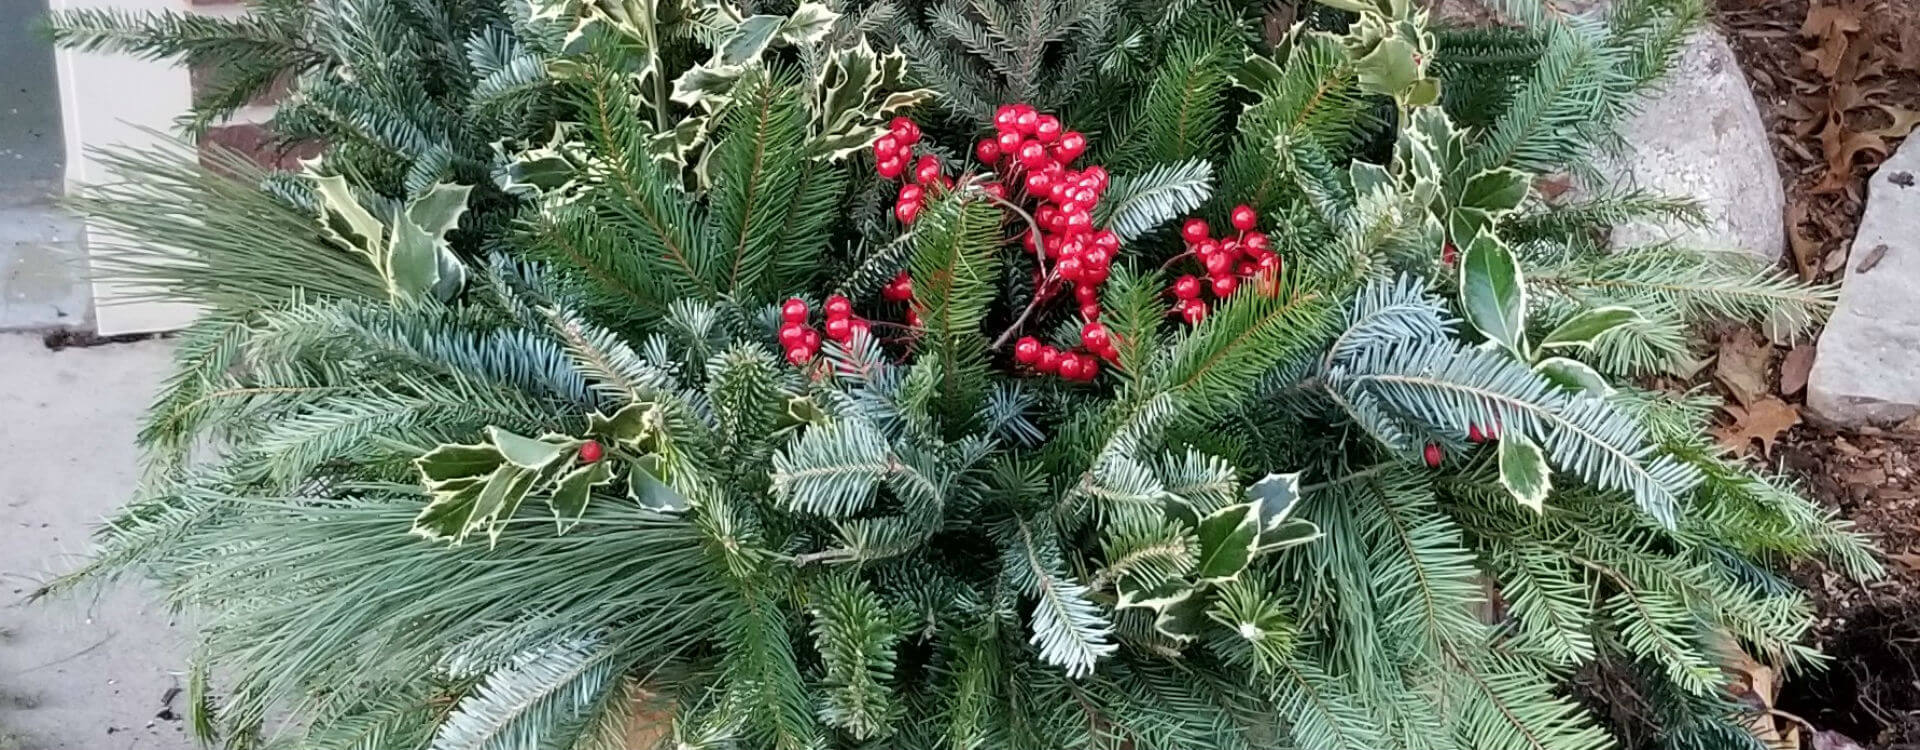 Forever Green Coralville Iowa Garden Center Christmas tree header image